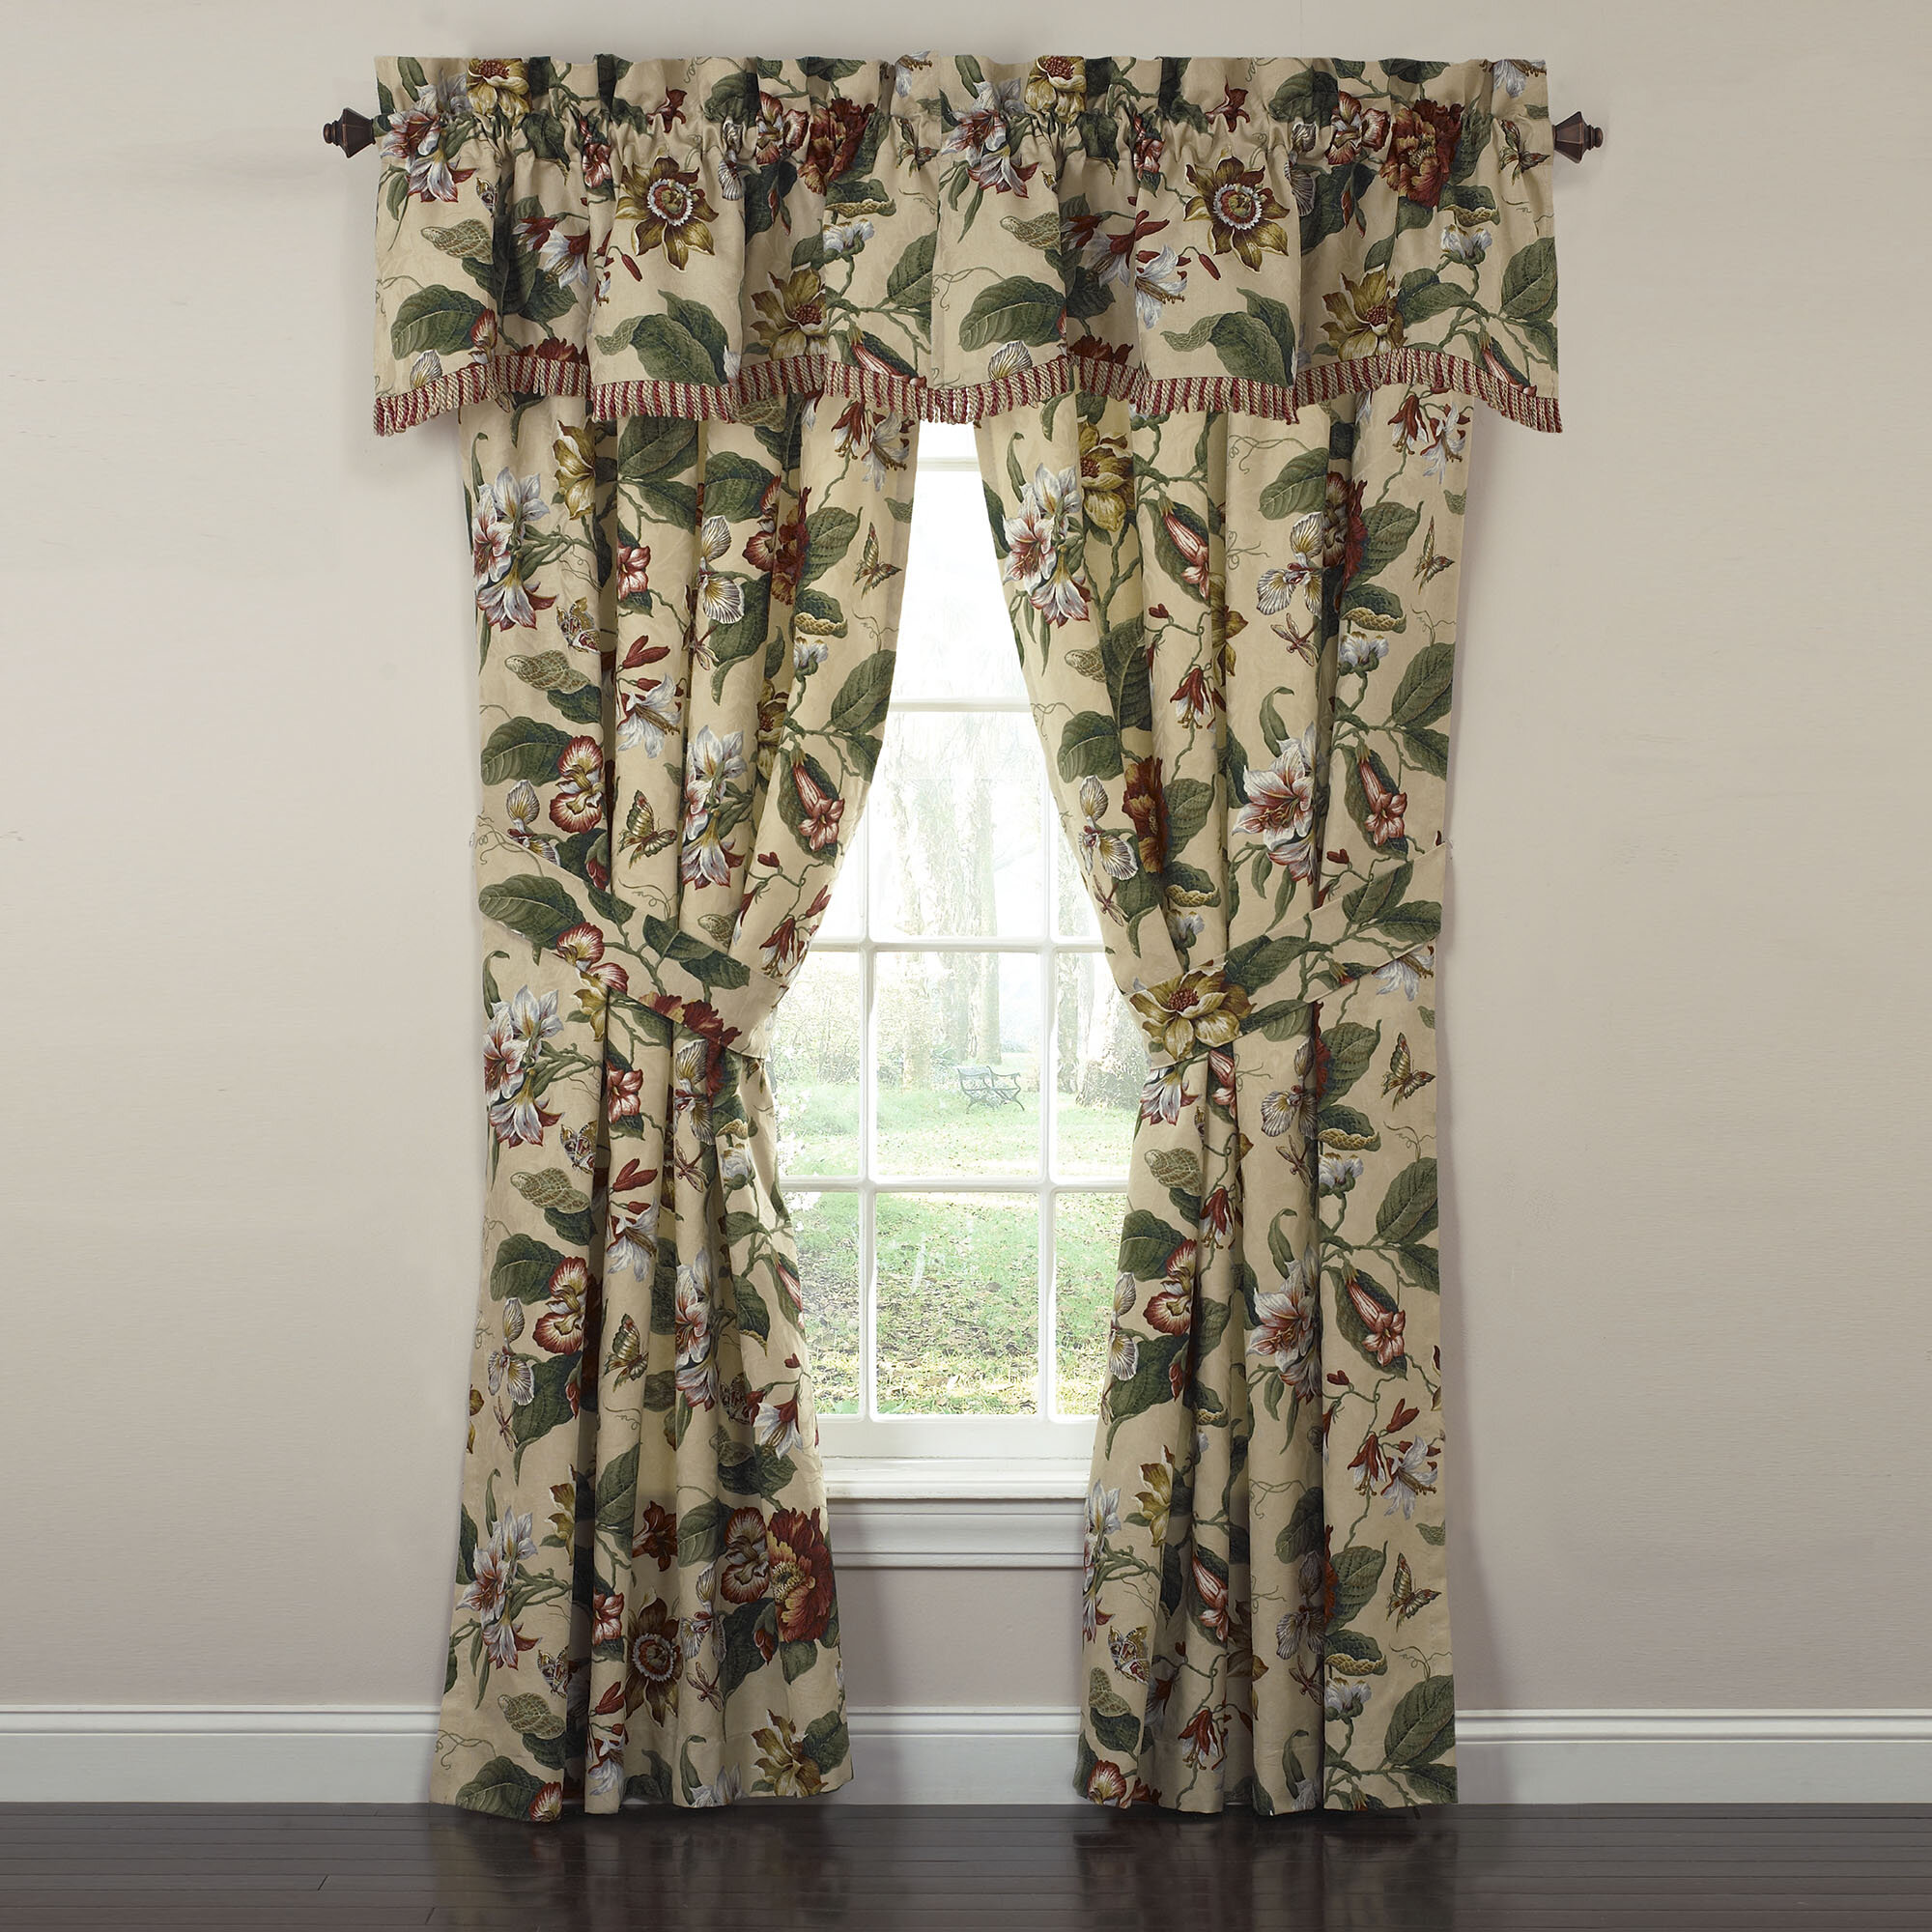 length extra long kohls drop decorating drapes ideas ikea ft inch outdoor of wide dritz panels inches sunbrella night curtains awesome size vue decor exotic sheer full tips curtain and for appealing cool best sky